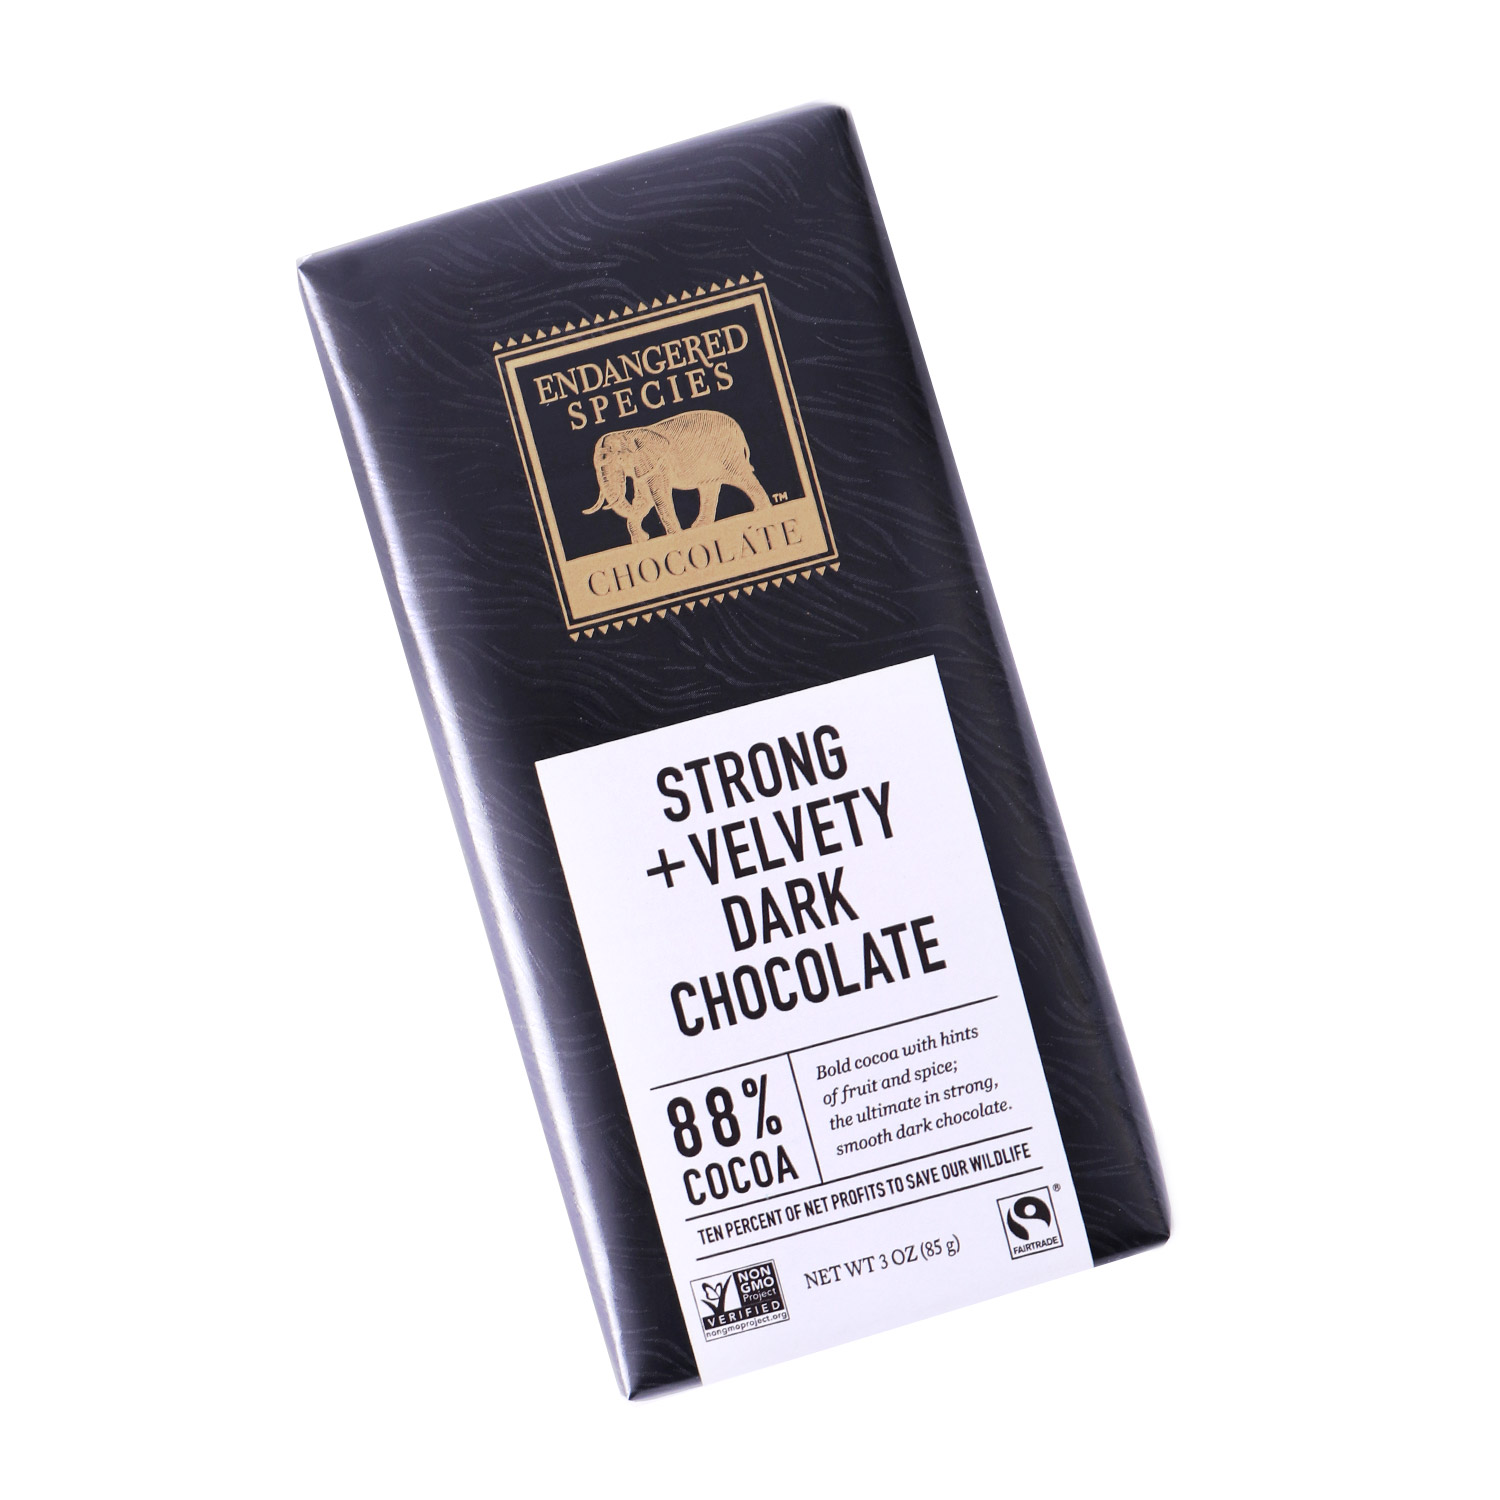 Dark Chocolate, Strong & Velvety - 88% Cocoa